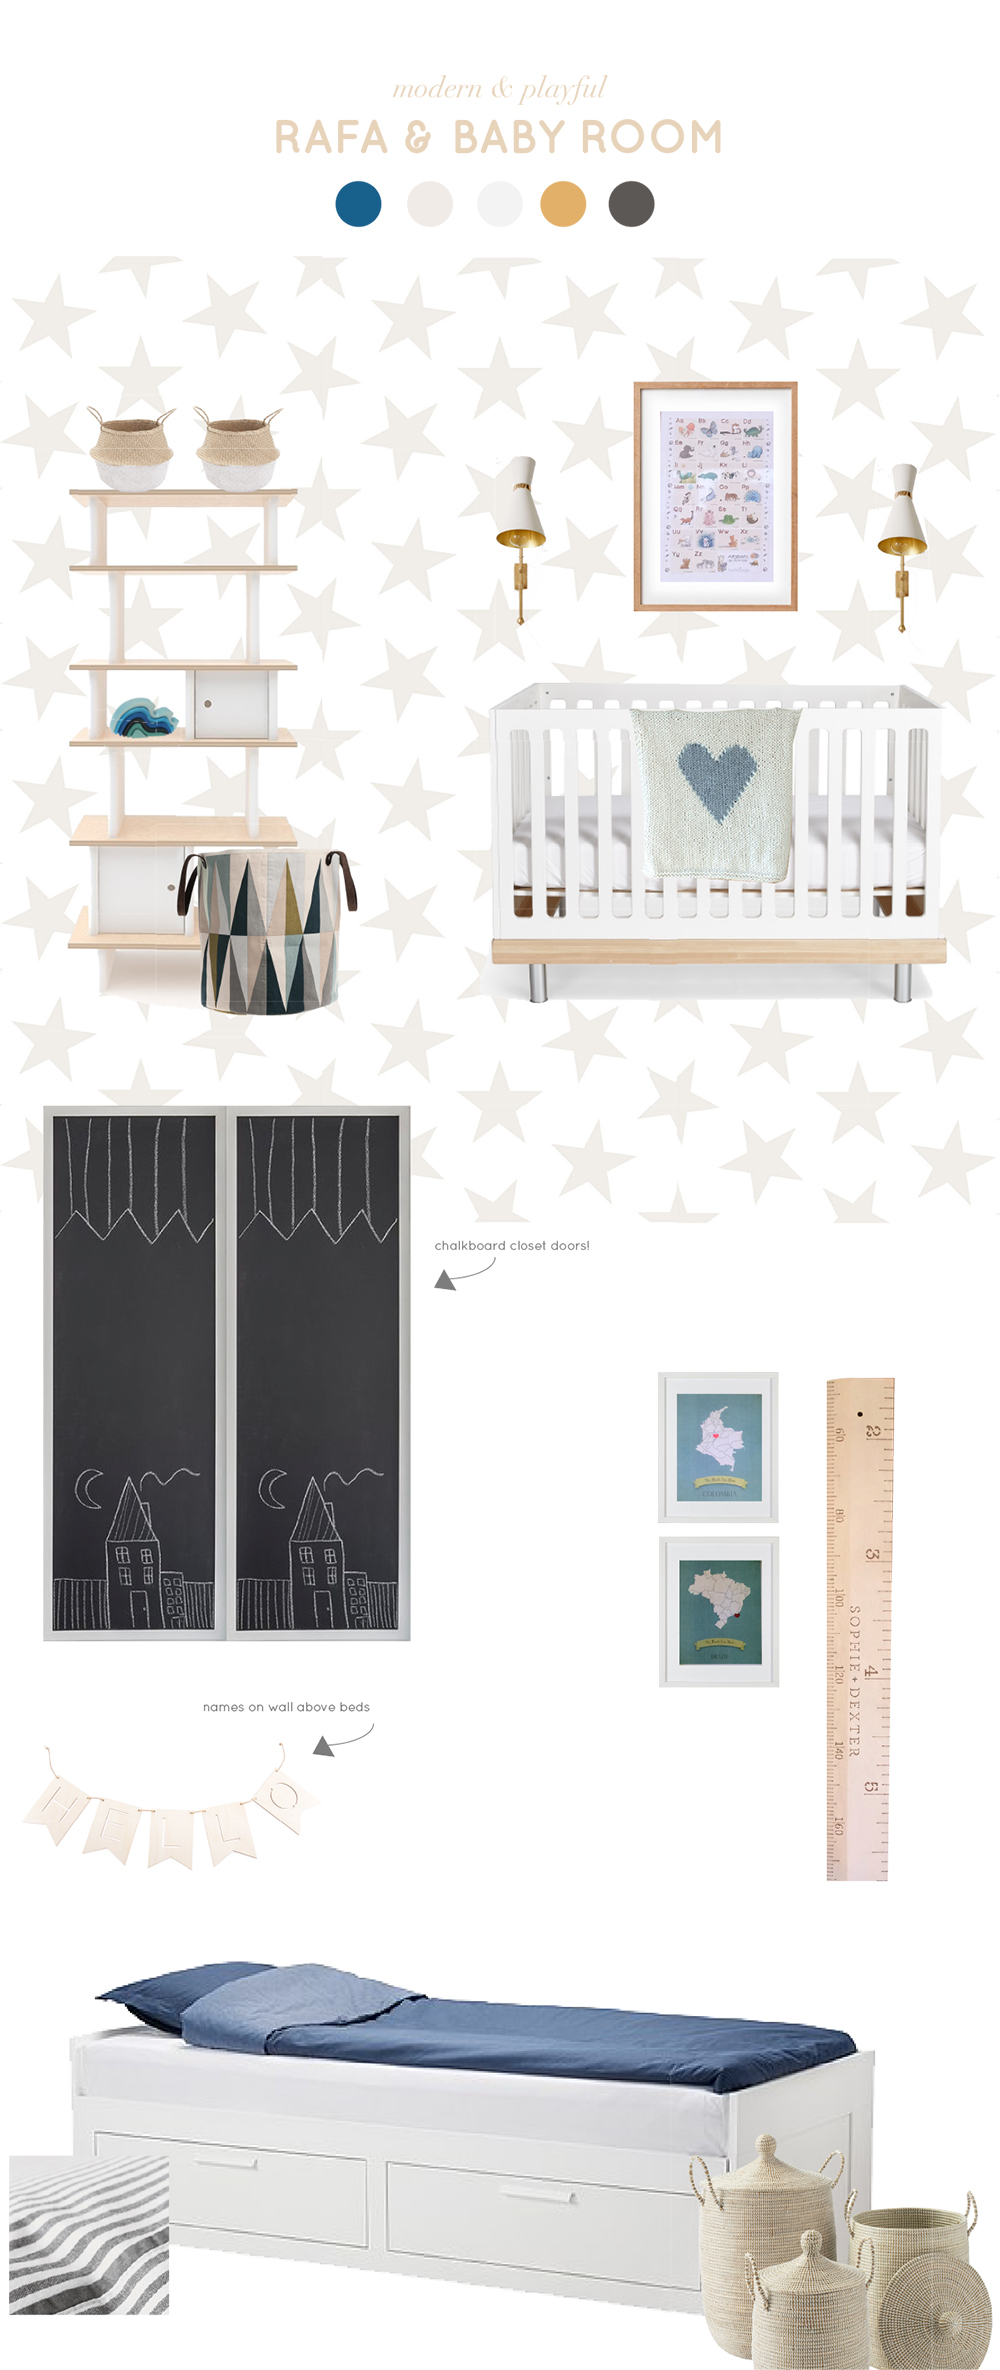 design board by Children's Interior Designer Melissa Barling from WINTER DAISY